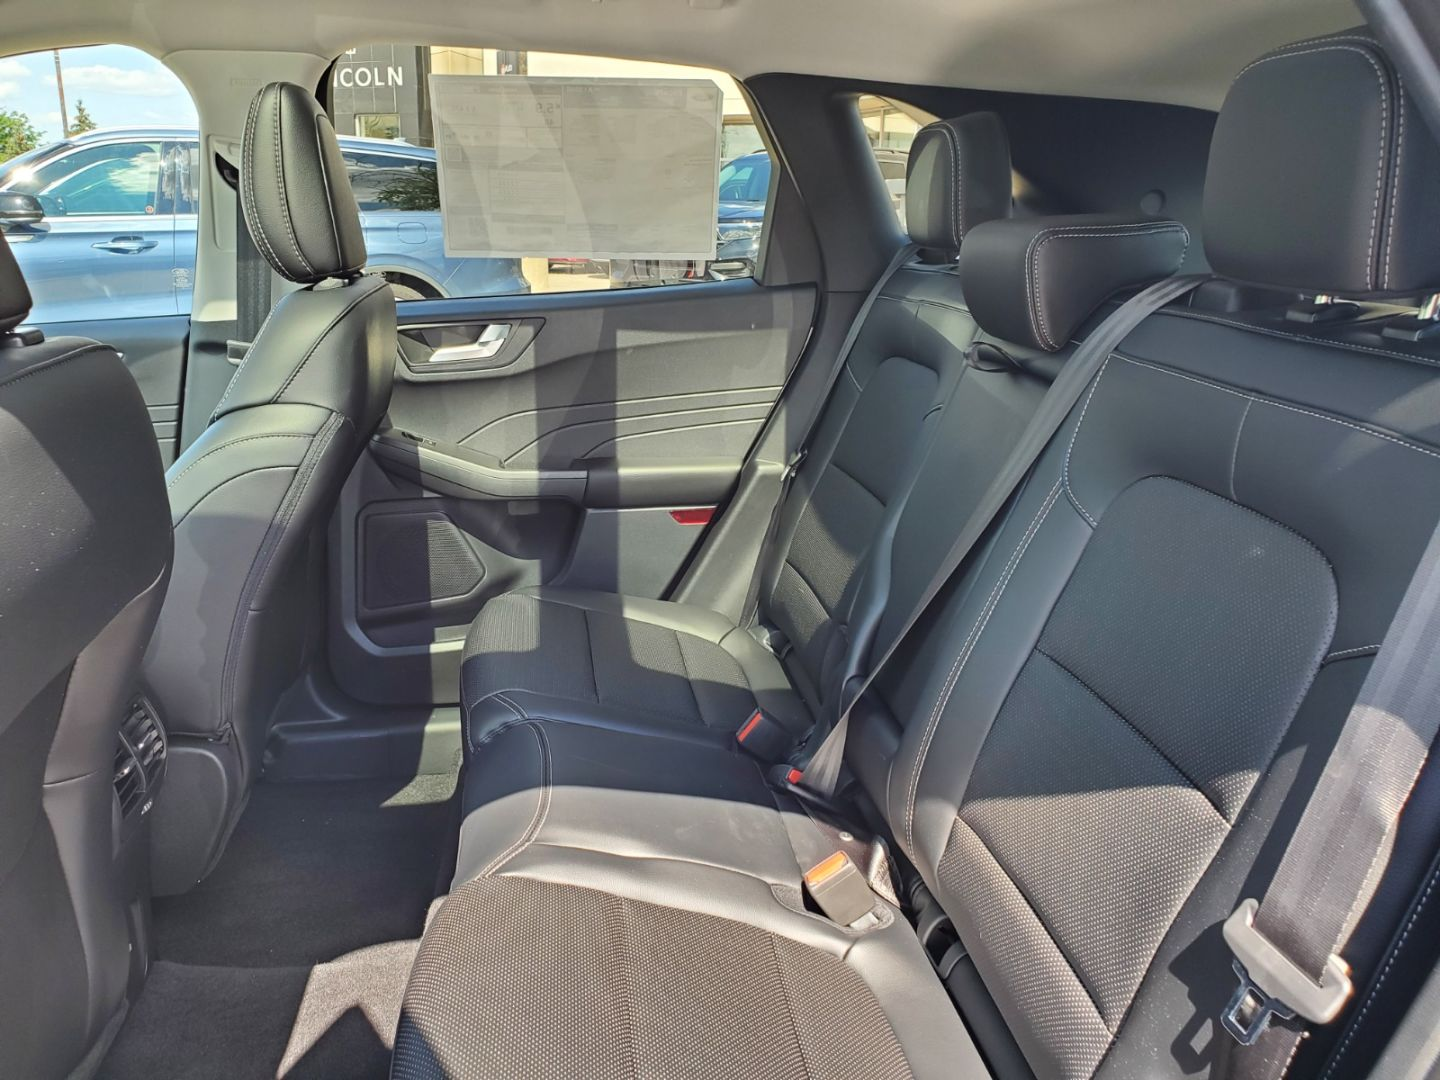 2021 Ford Escape SEL Hybrid for sale in Mississauga, Ontario